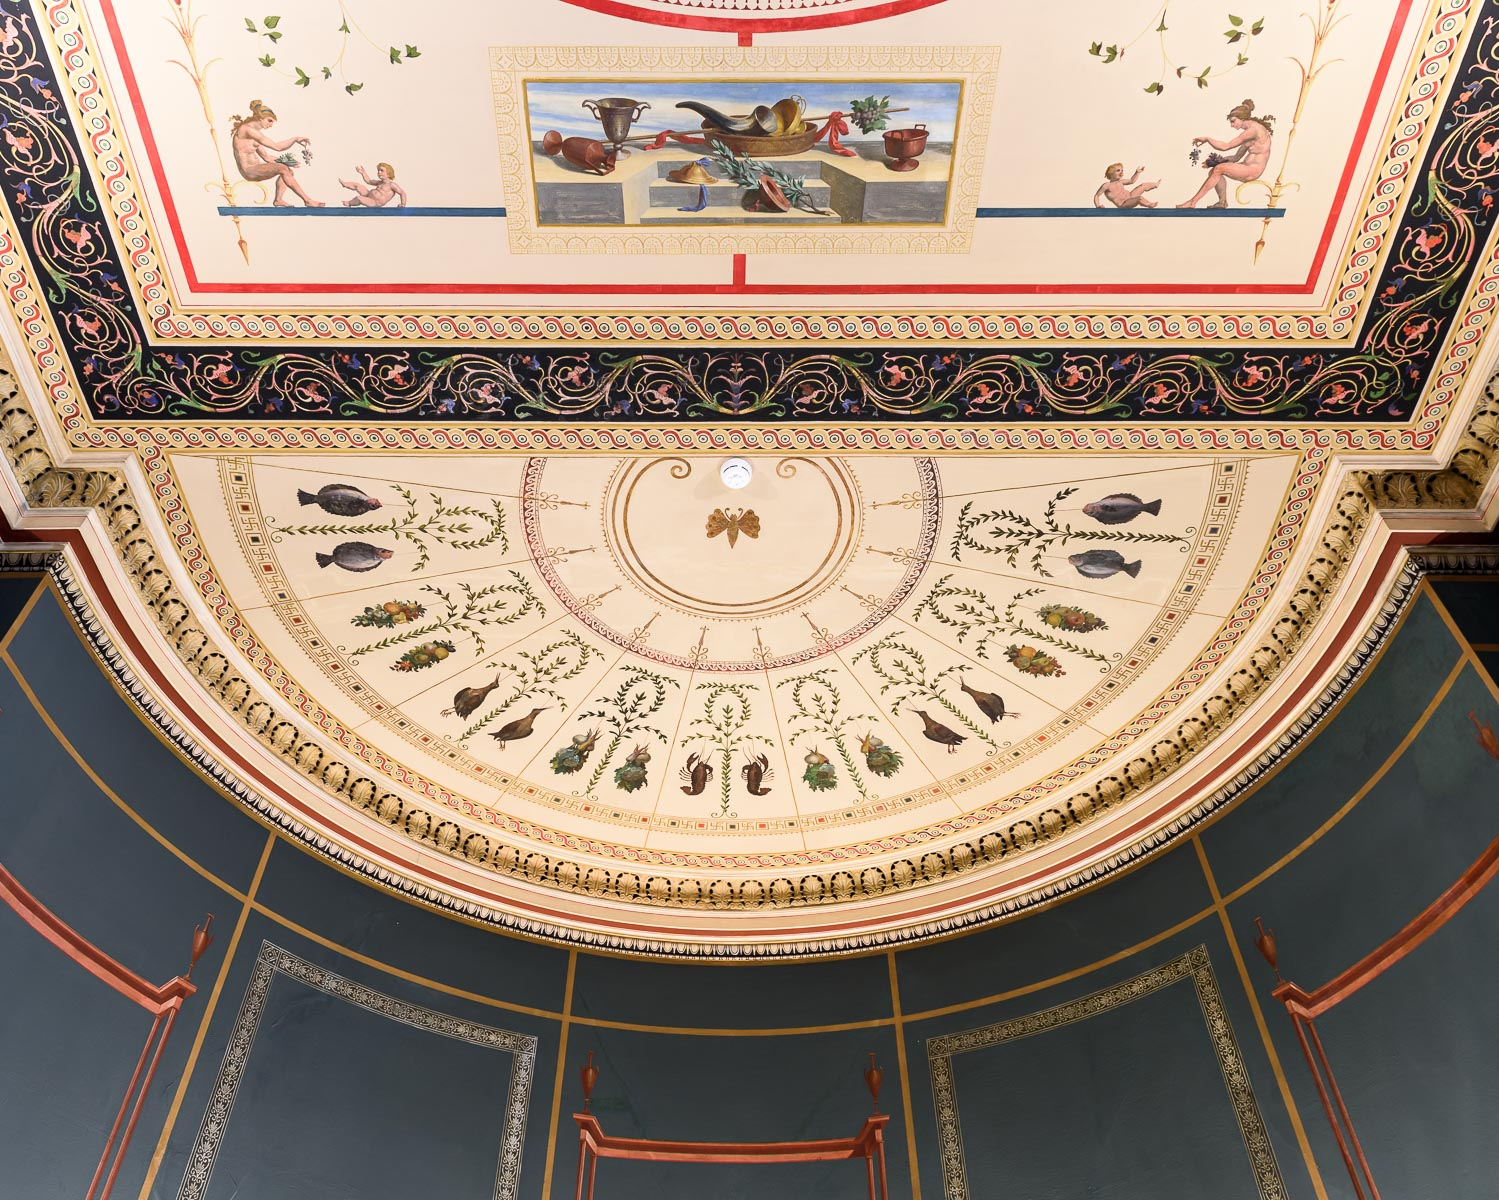 Cieling of the Numismatic Museum, which houses one of the largest collections of coins, ancient and modern, in the world. Founded in 1838